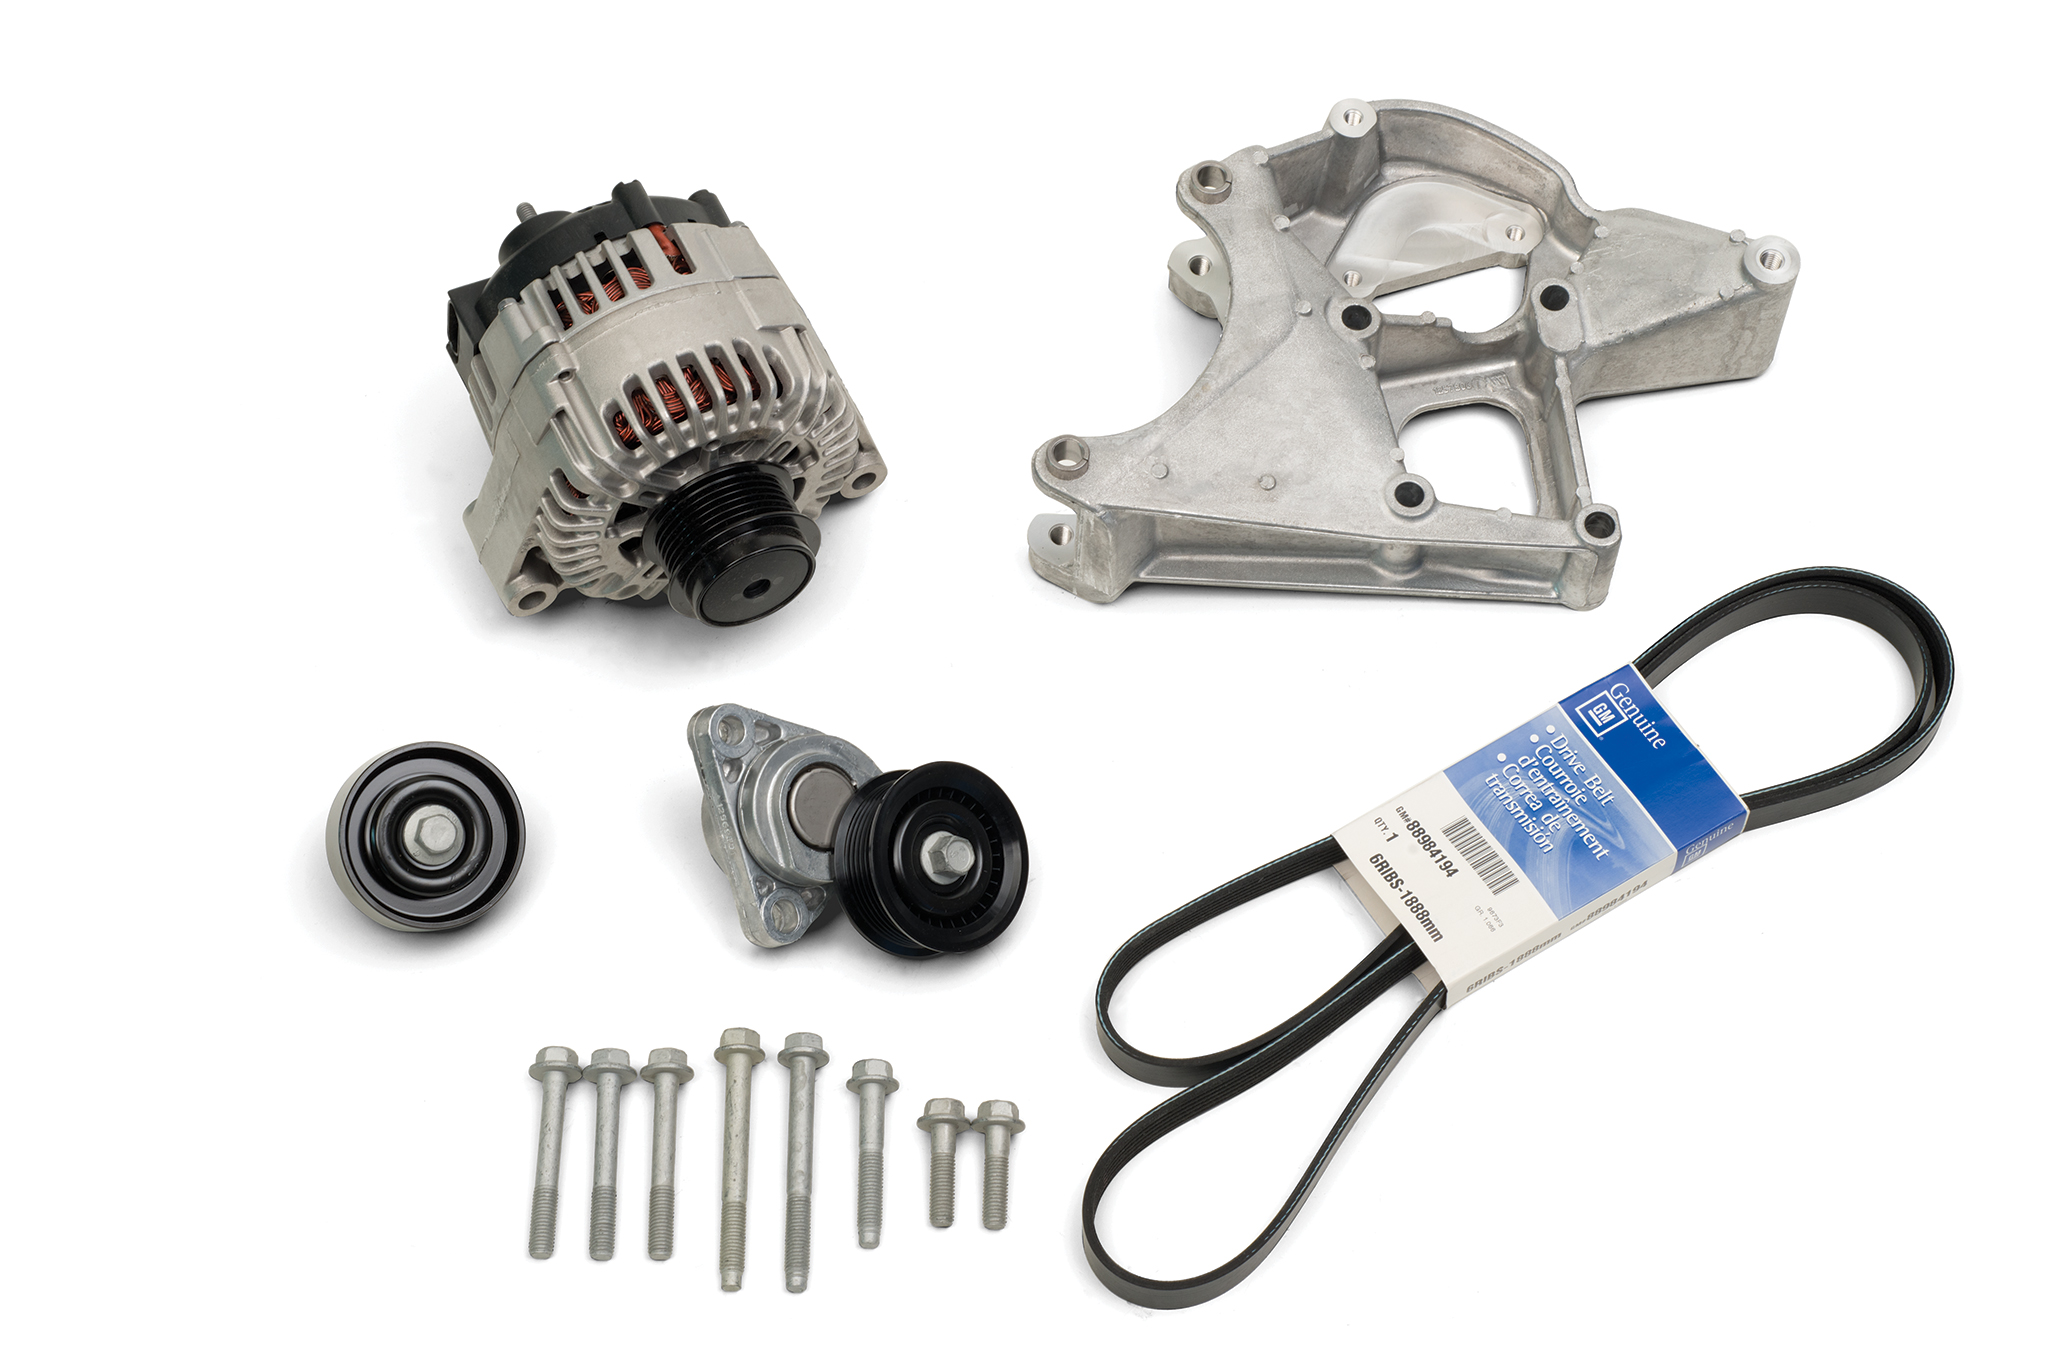 Chevrolet Performance offers a couple of extras to go along with the DR525, like its front-engine accessory drive package that includes alternator, bracket, tensioner, serpentine belt, and other components. It is listed under P/N 19329418. A separate PCM is required for CP Stock and racers will find that under P/N 19329004 in the Chevrolet Performance catalog.